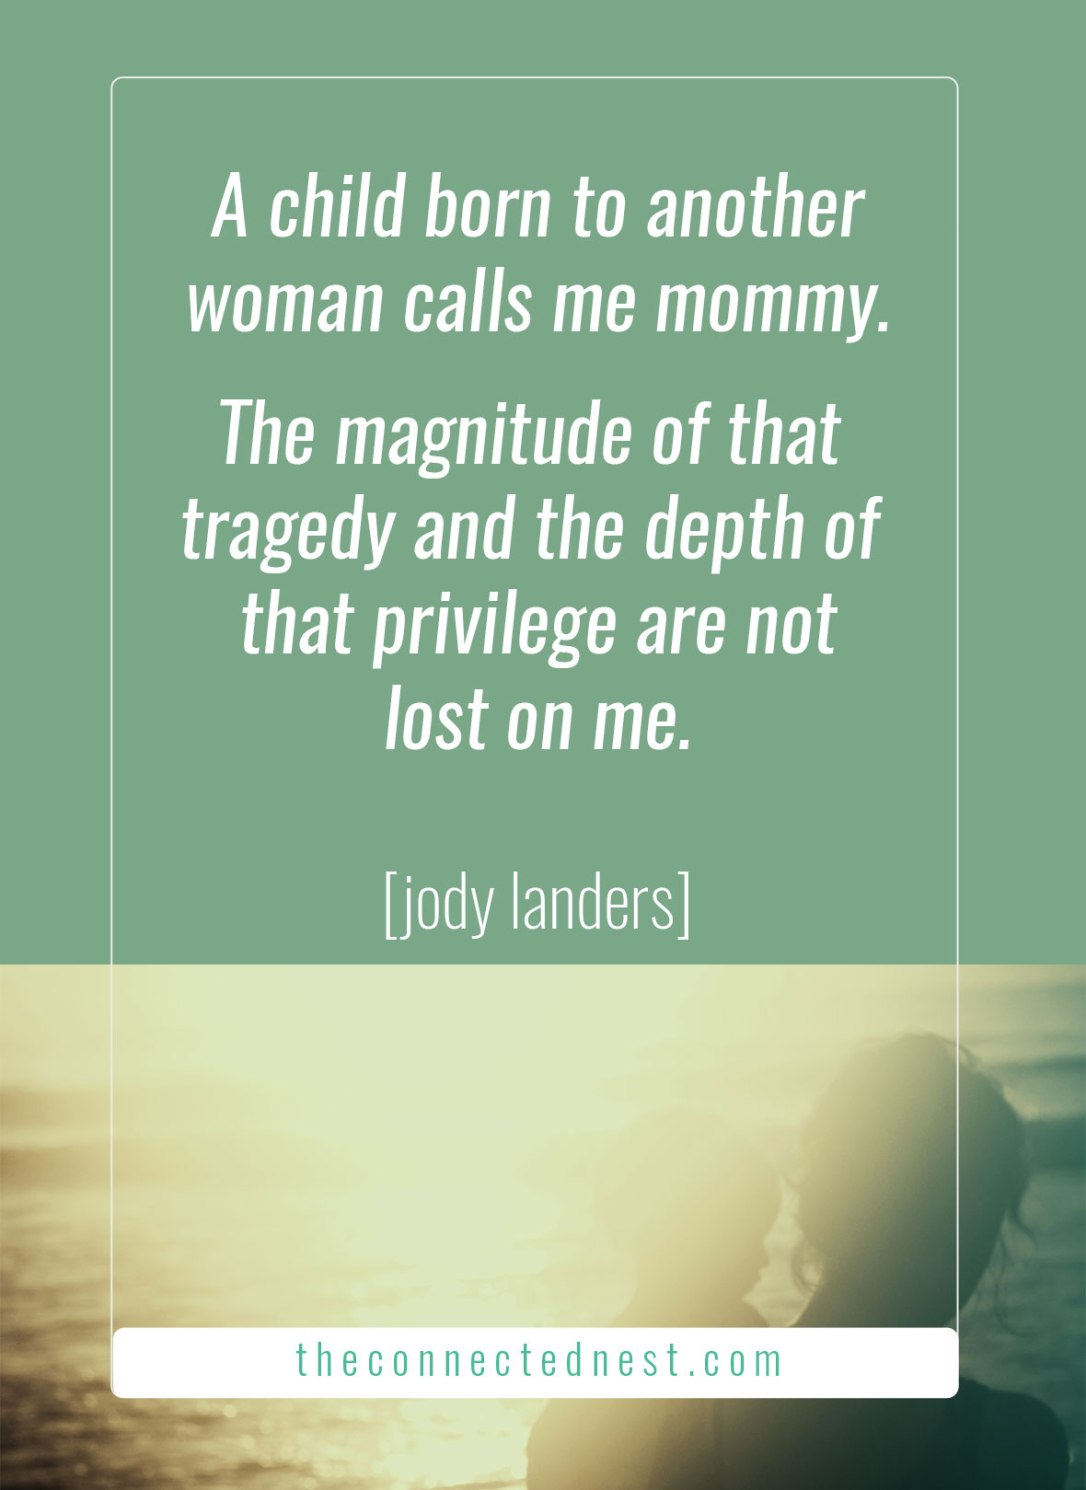 A child born to another woman calls me mommy. The magnitude of that tragedy and the depth of that privilege are not lost on me. [Jody Landers]